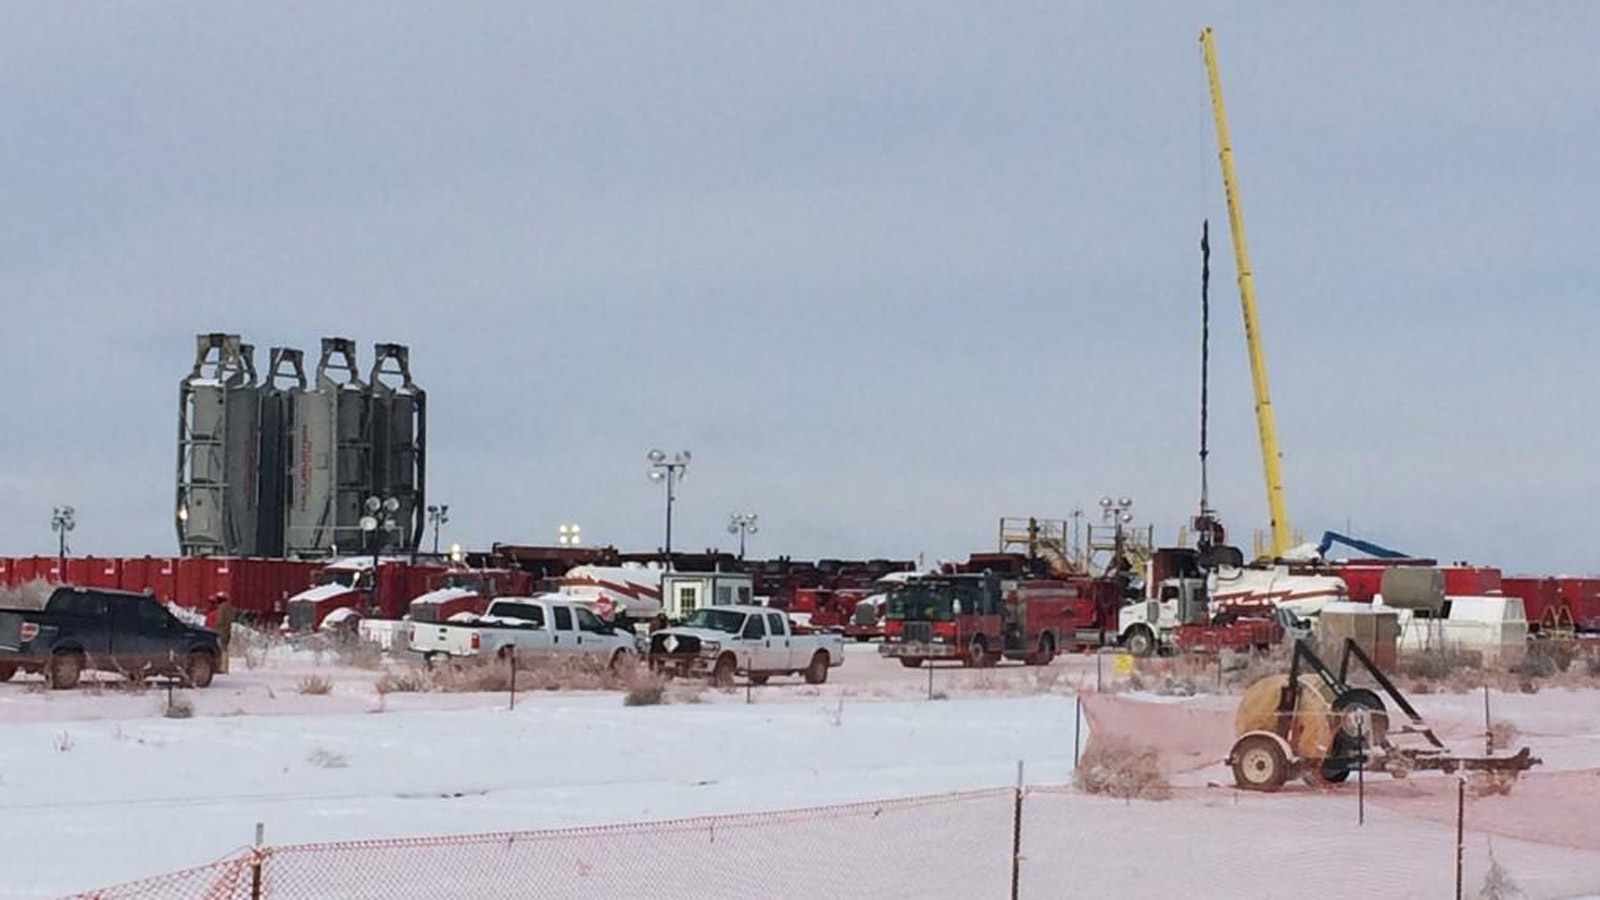 The fracking site in Weld County where one person died. (credit: CBS)